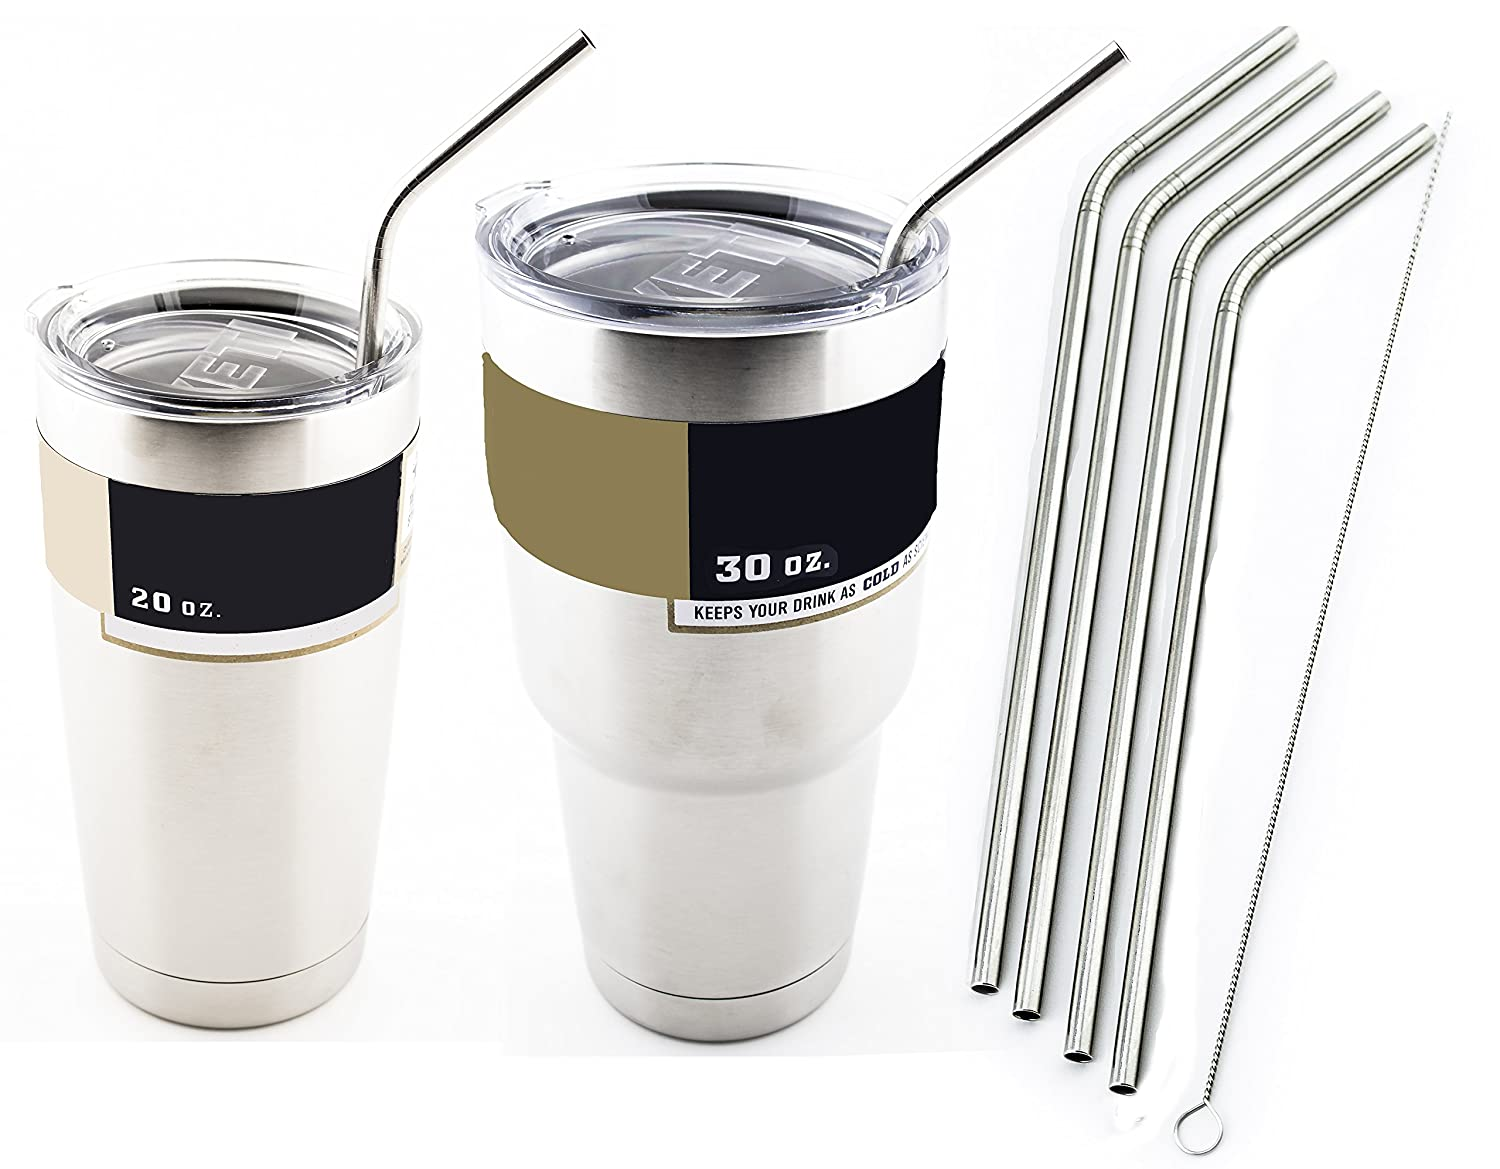 4 Bend Stainless Steel Straws Extra Long Fits 30 Oz Amp 20